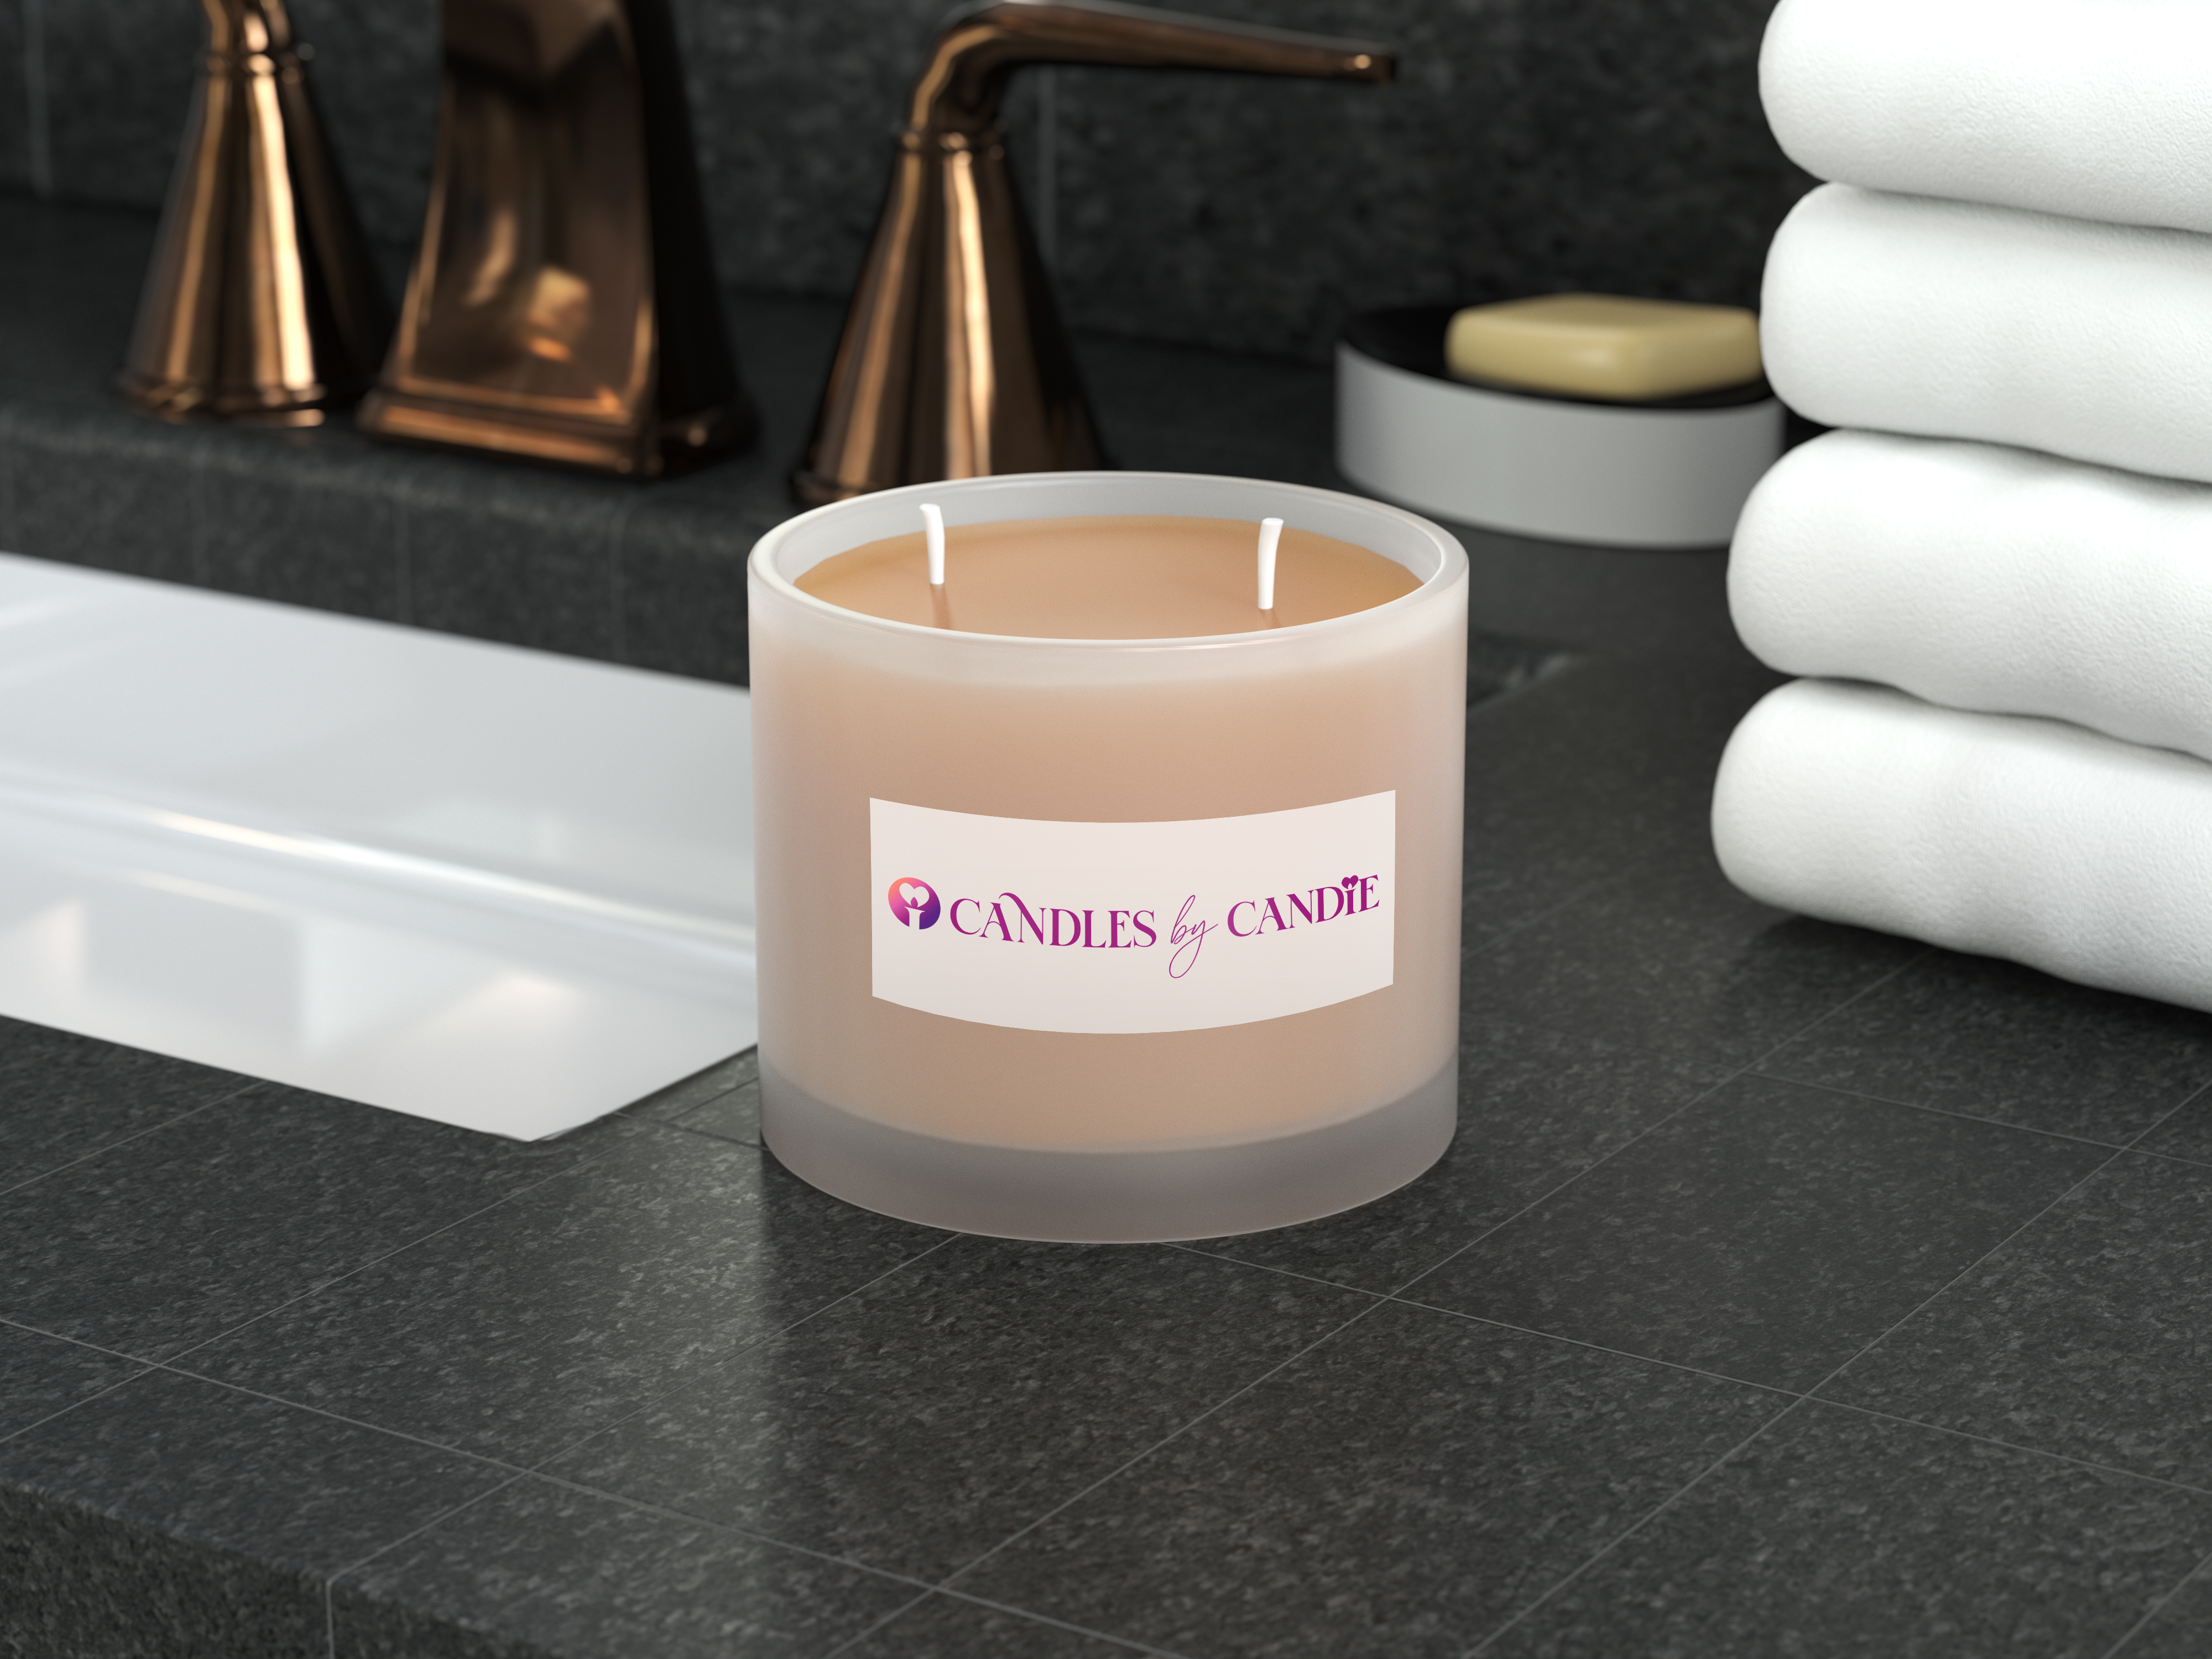 Candles by Candie Candle  Mockup